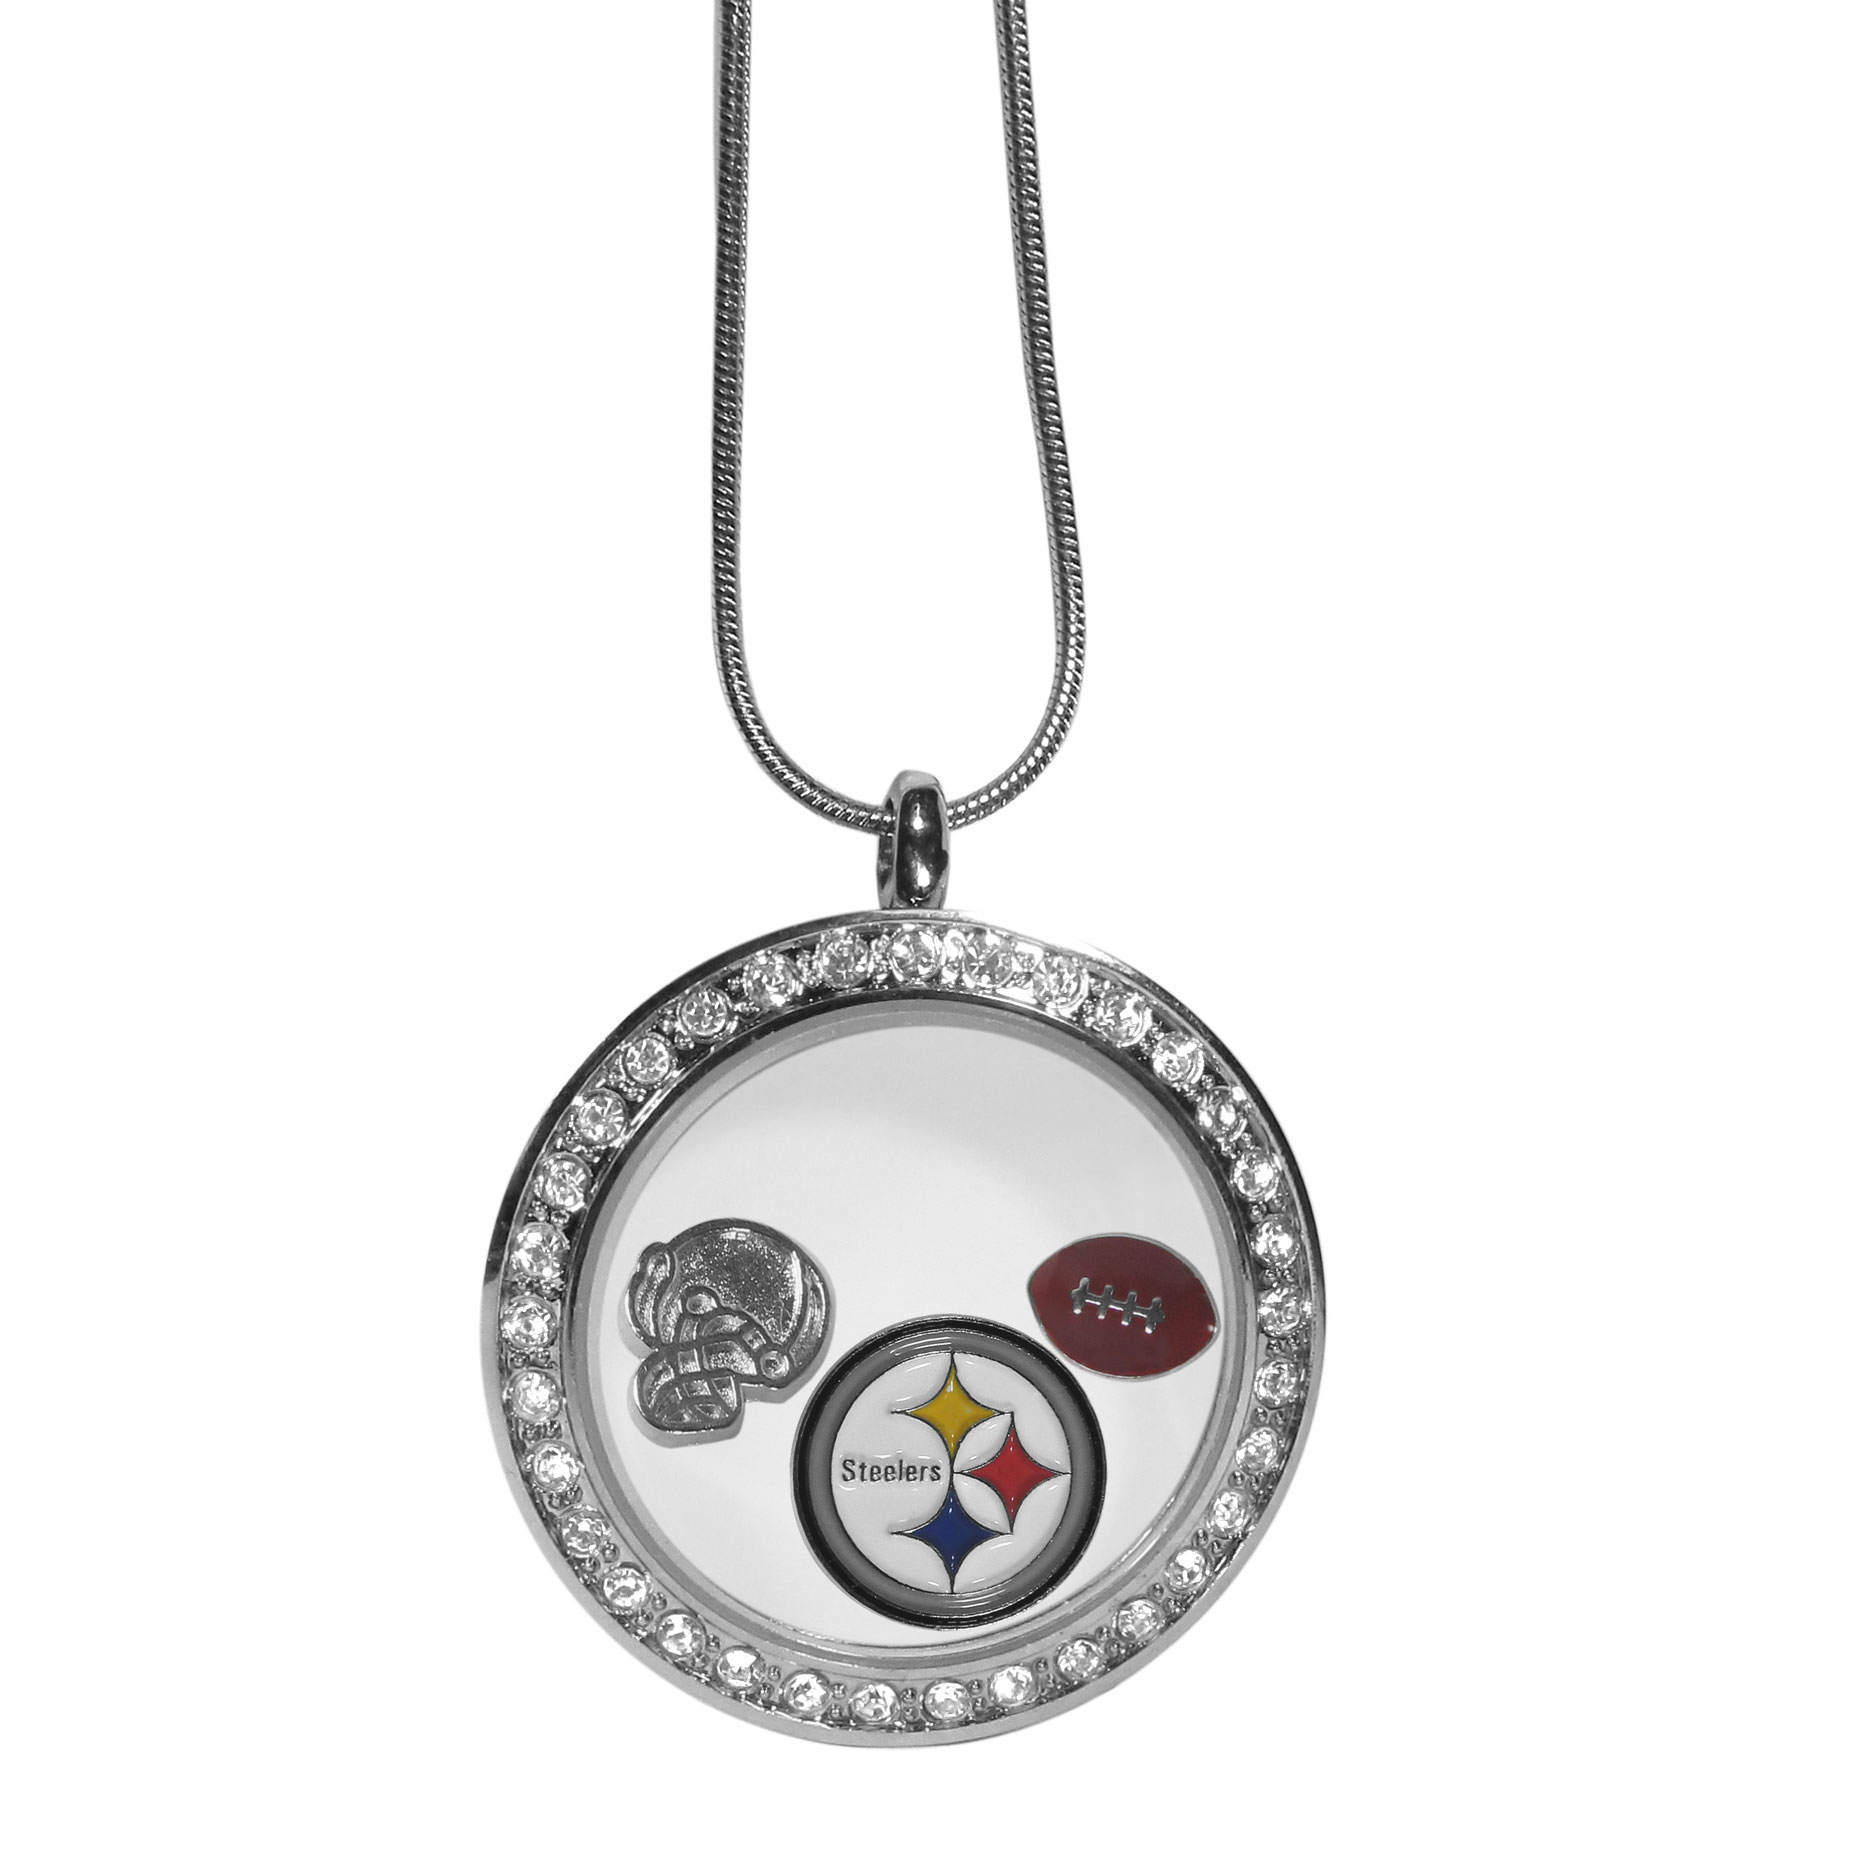 Pittsburgh Steelers Locket Necklace - We have taken the classic floating charm locket and combined with licensed sports charms to create a must have fan necklace. The necklace comes with 3 charms; 1 Pittsburgh Steelers charm, one football charm and one helmet charm. The charms float in a beautiful locket that has a strong magnetic closure with a rhinestone border. The locket comes on an 18 inch snake chain with 2 inch extender.